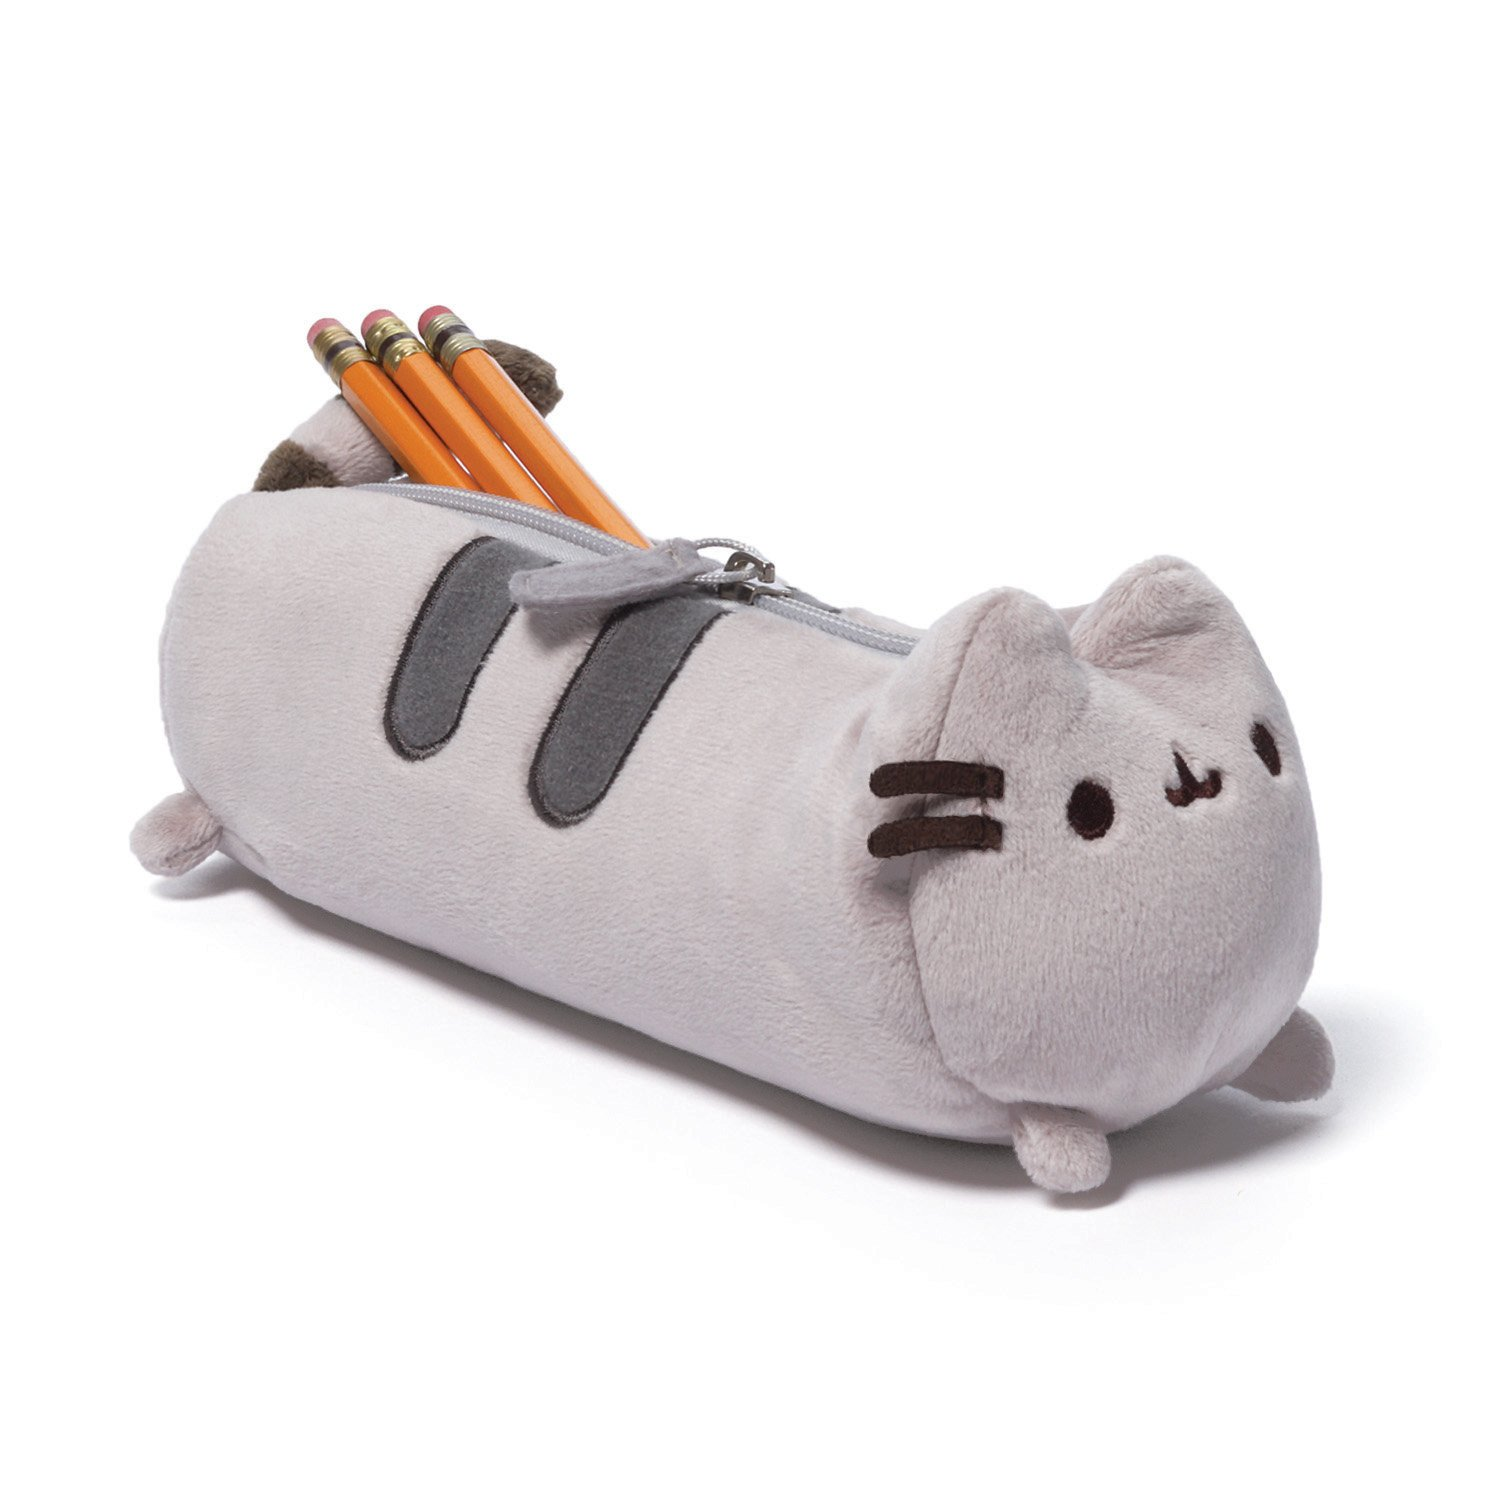 GUND Pusheen Stuffed Plush Accessory Pencil Case, Gray, 8.5""